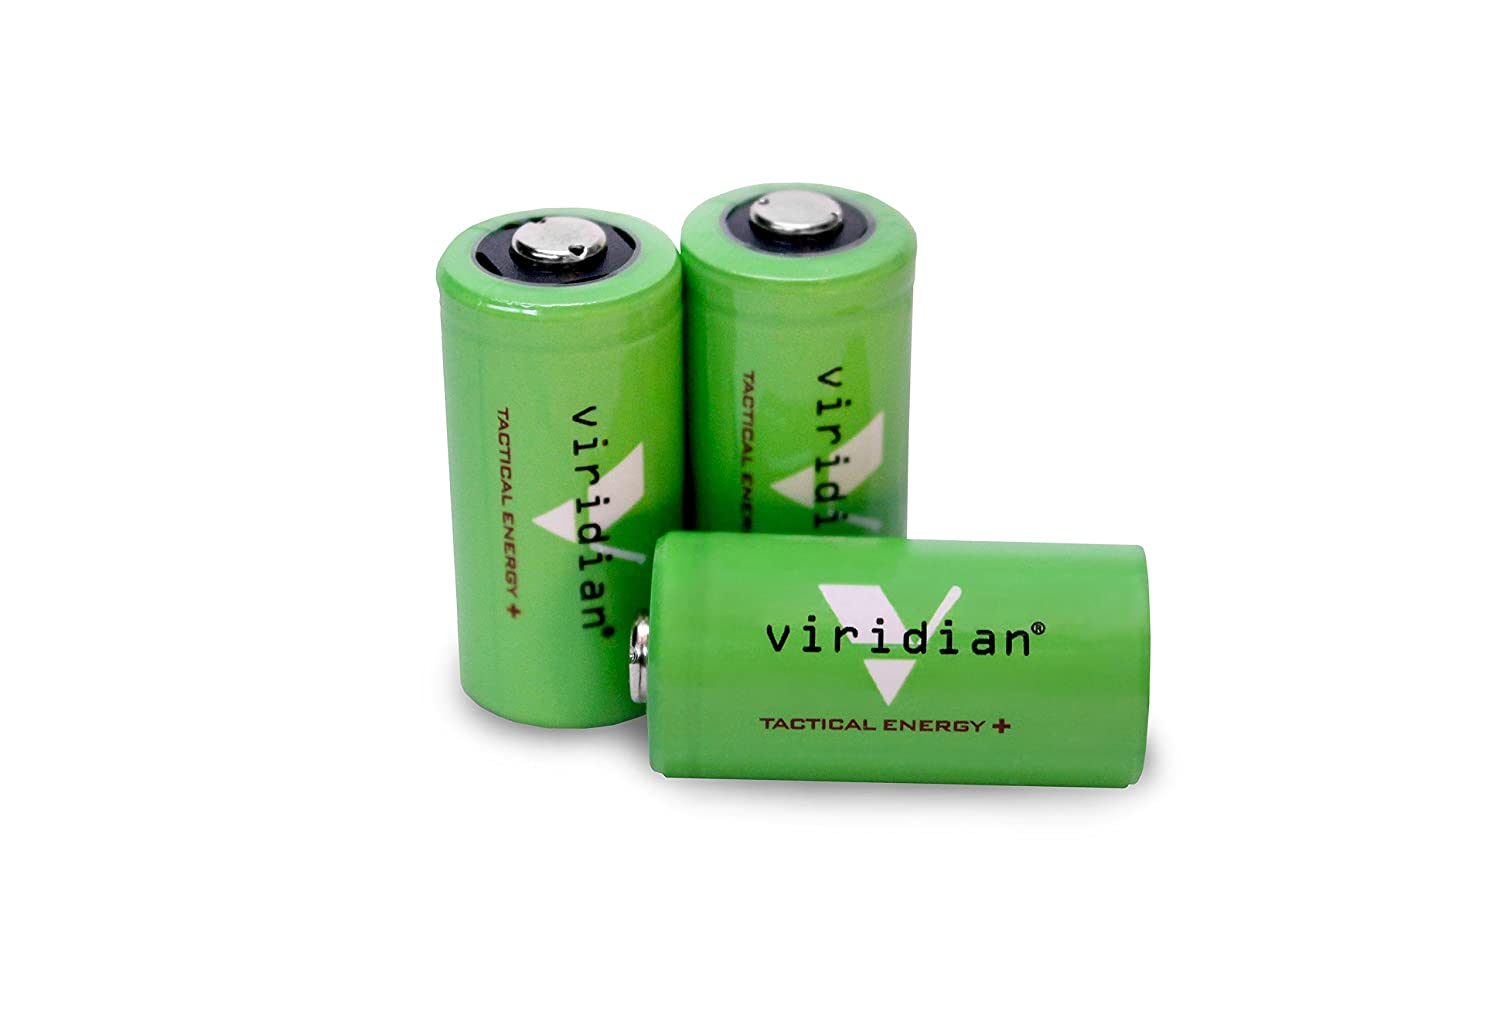 Viridian CR123A Photo Lithium Battery Replacement